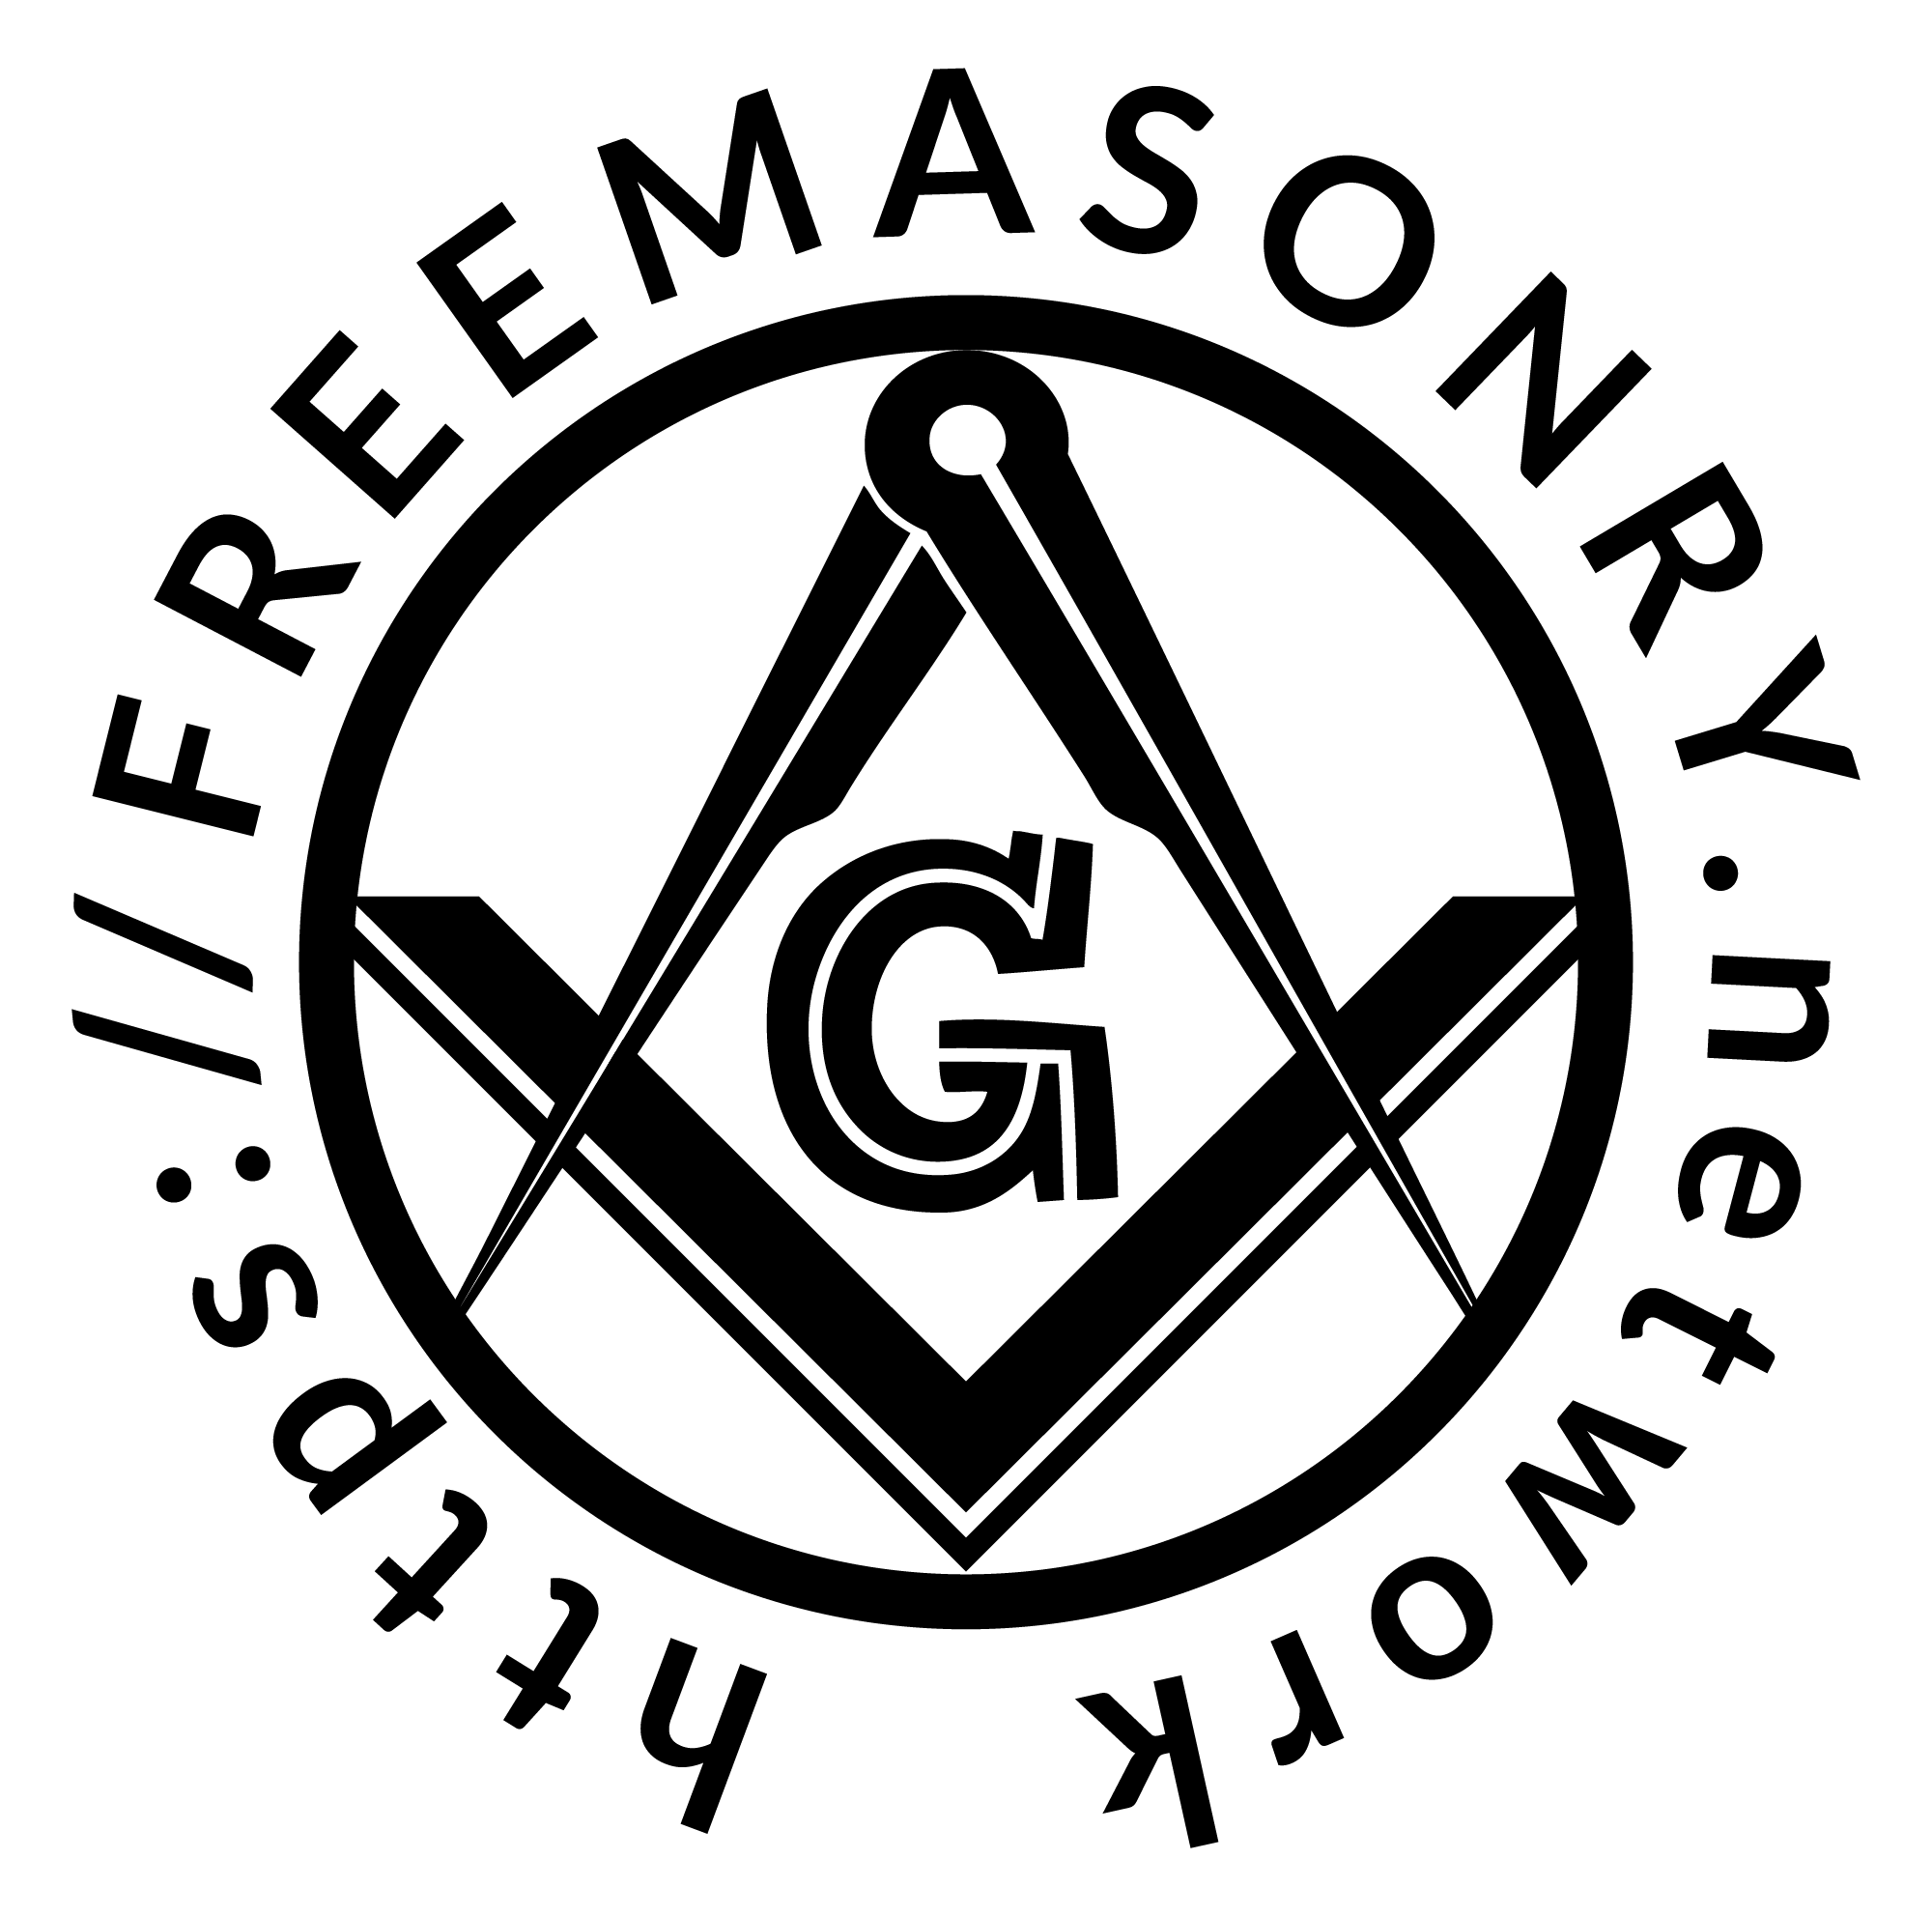 PICTURES OF MASONIC BOOKS